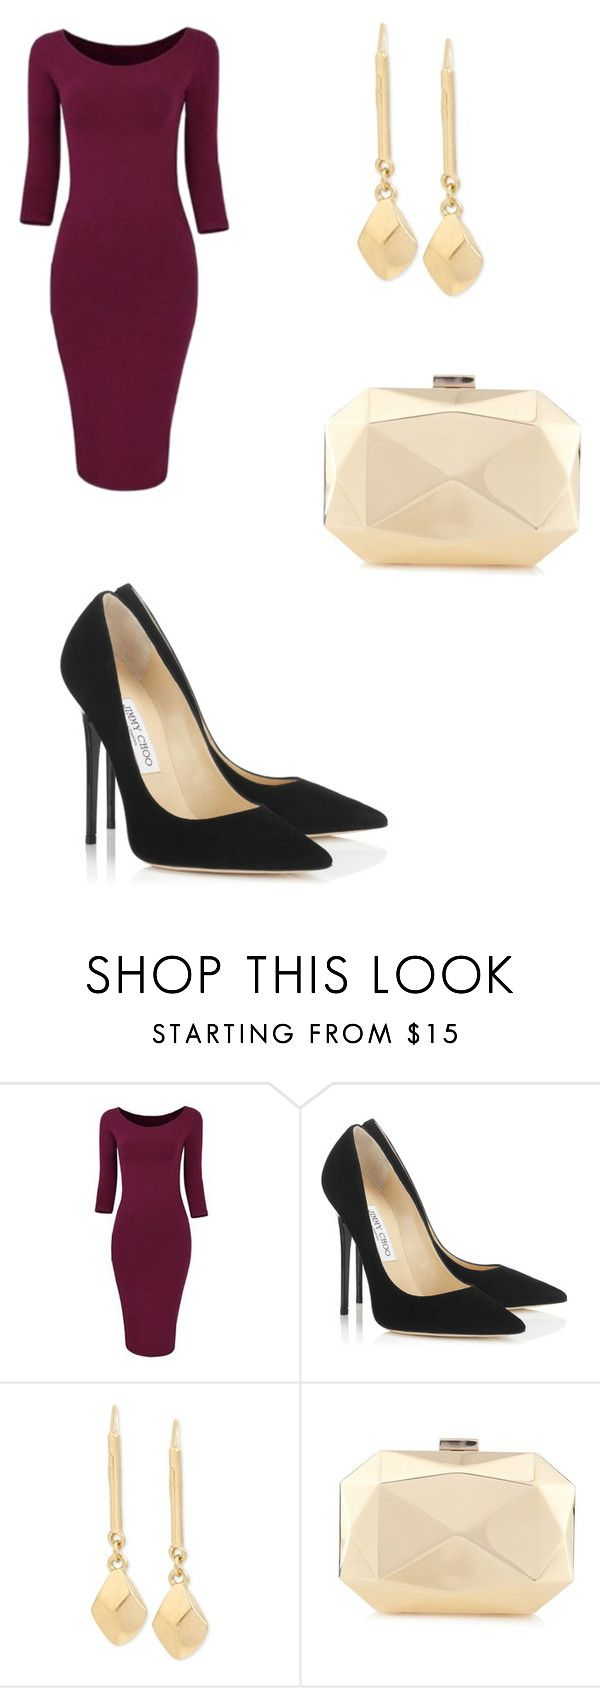 """New York"" by clarinhaw ❤ liked on Polyvore featuring Jimmy Choo and Kenneth Cole"